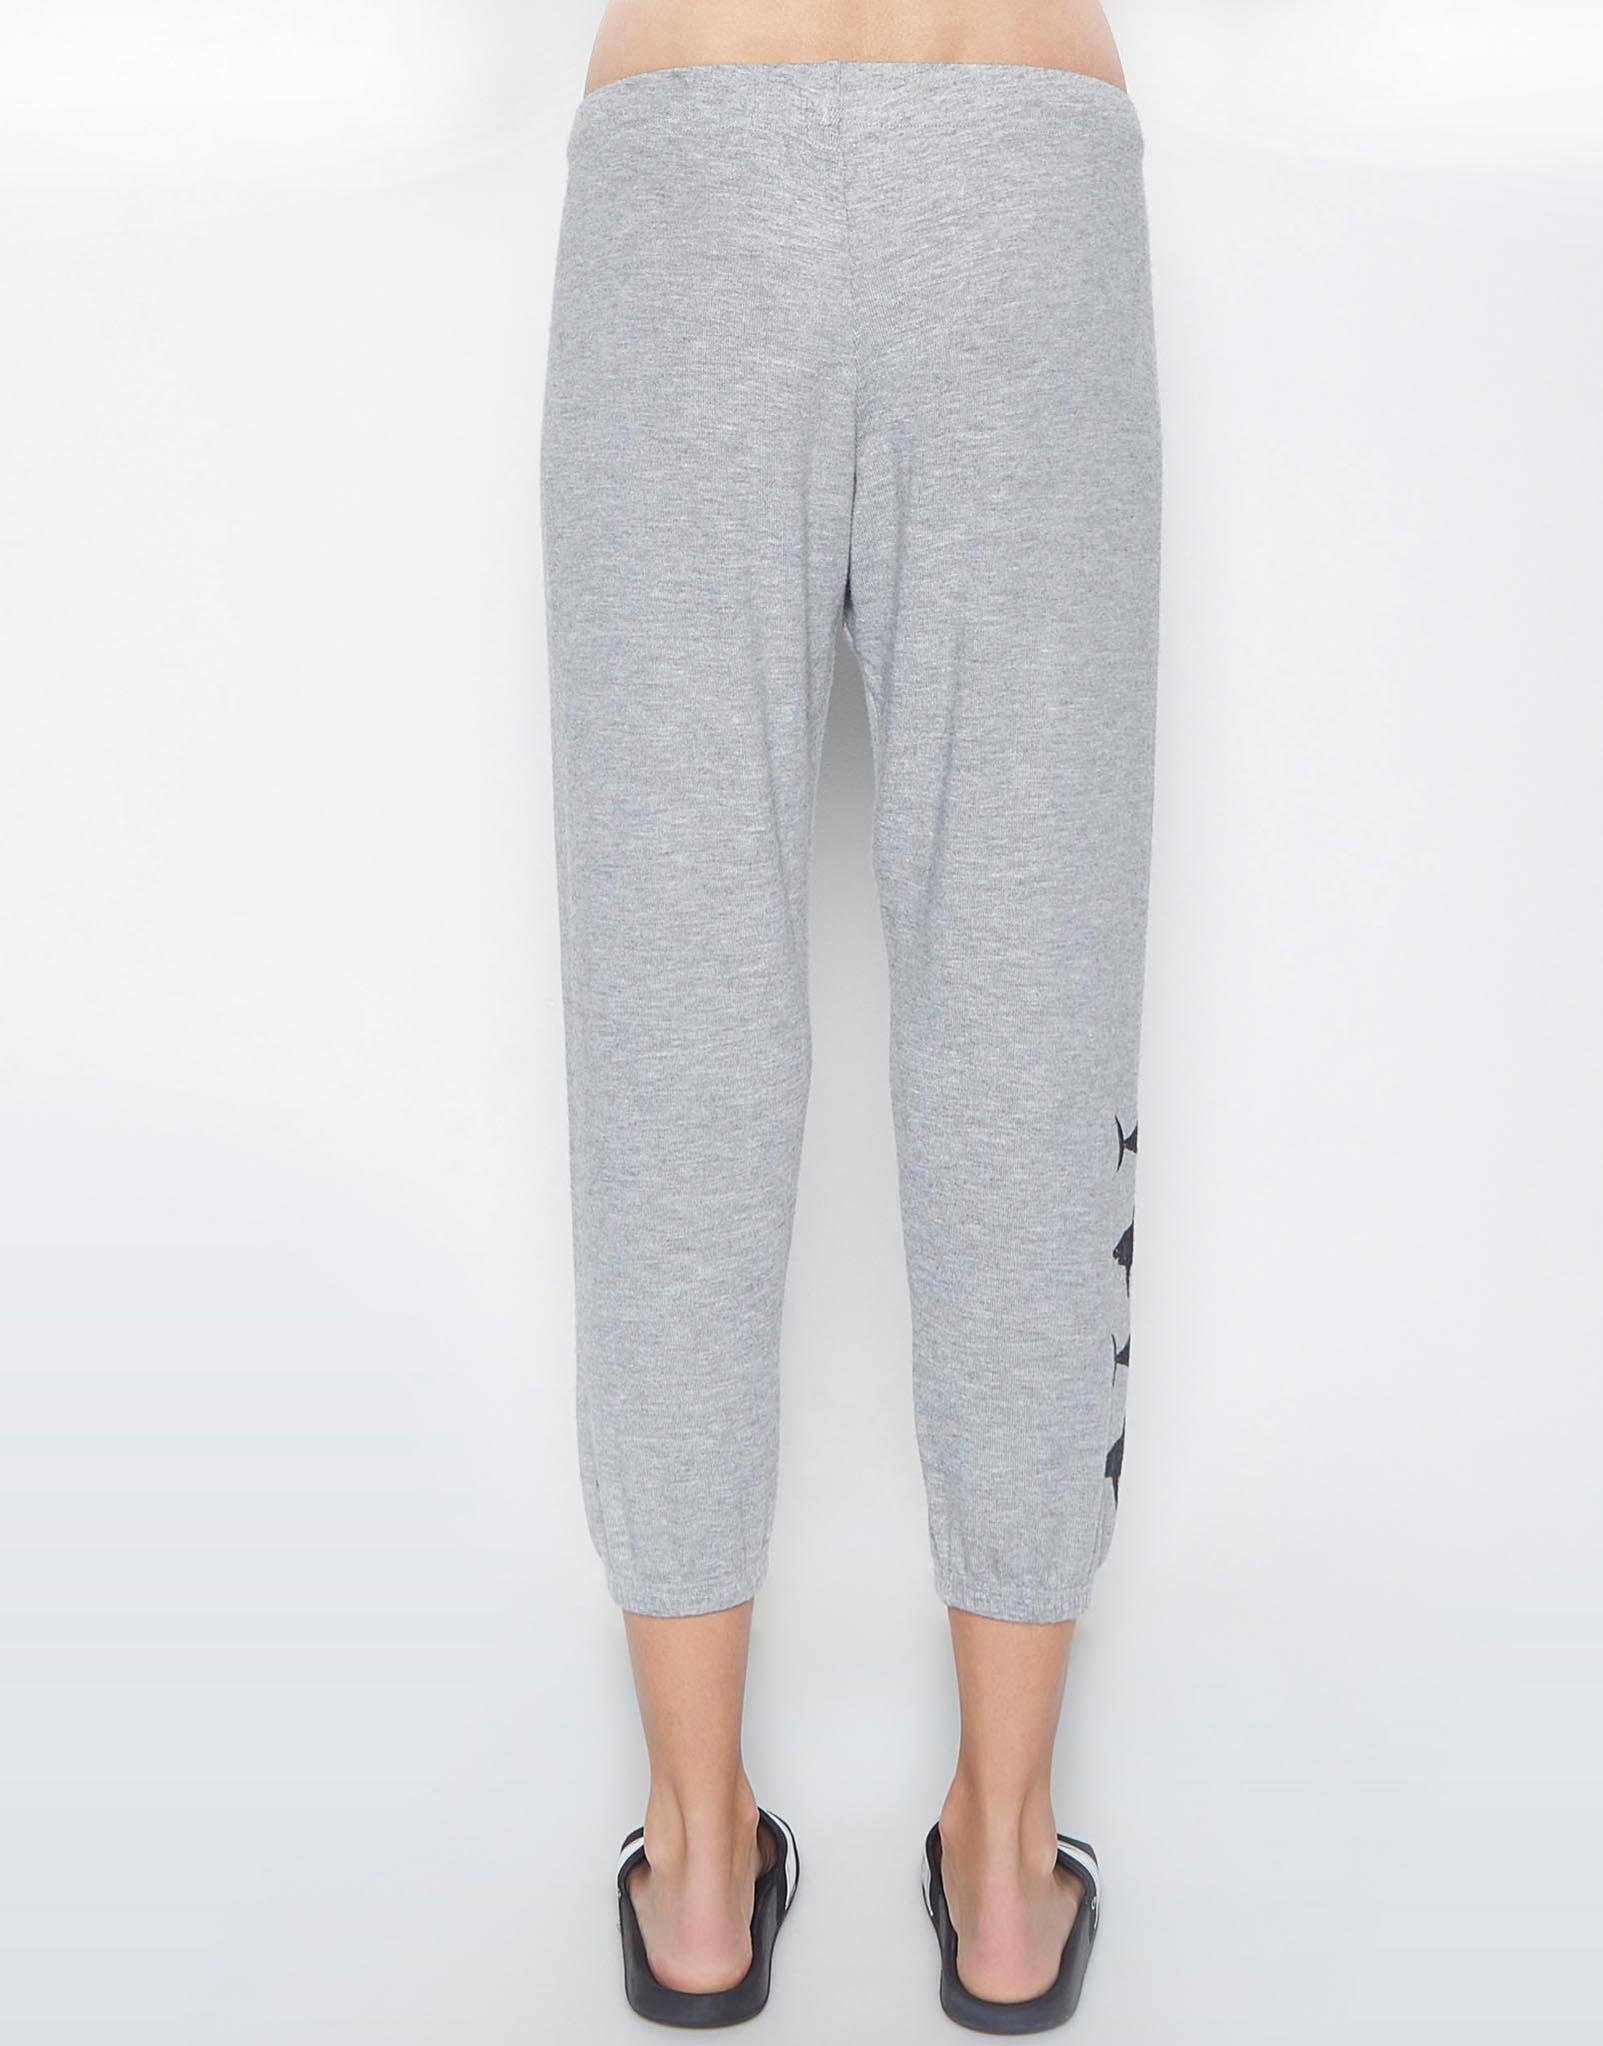 Lauren Moshi Women's Alana Shark Leg Crop Sweat Pant -